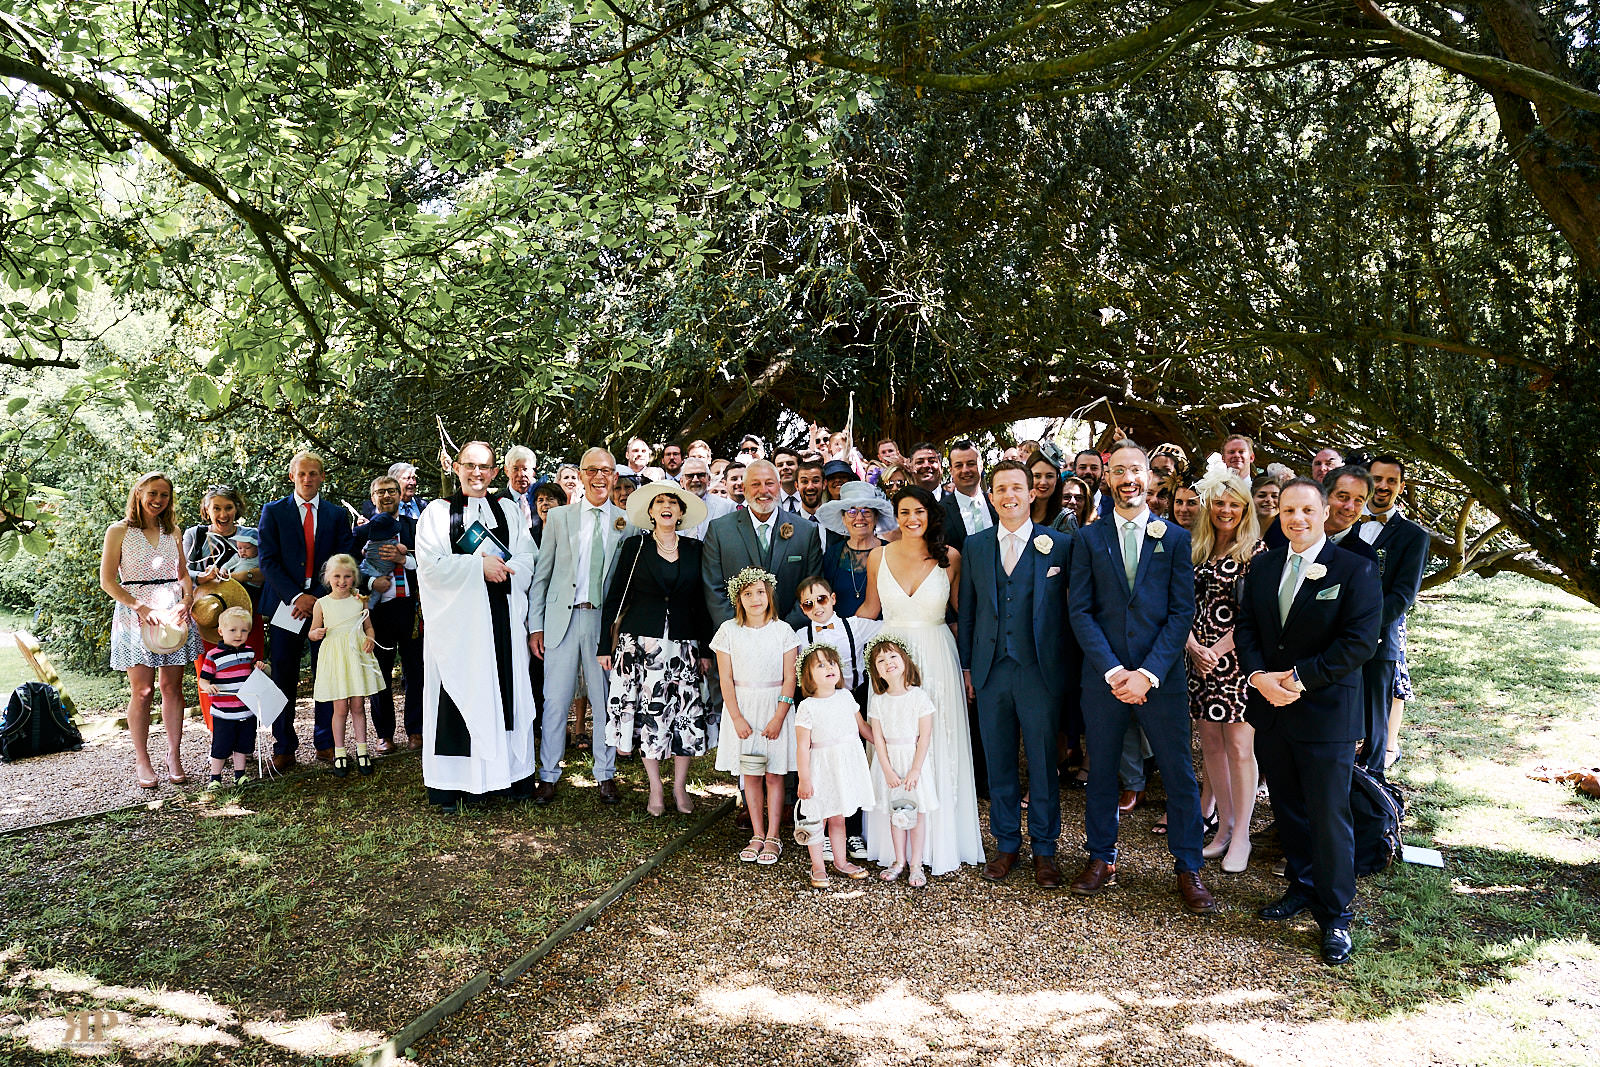 Nicholas Woodhams Wedding at Saint Lawrence Church Waltham on 22 June 2019.